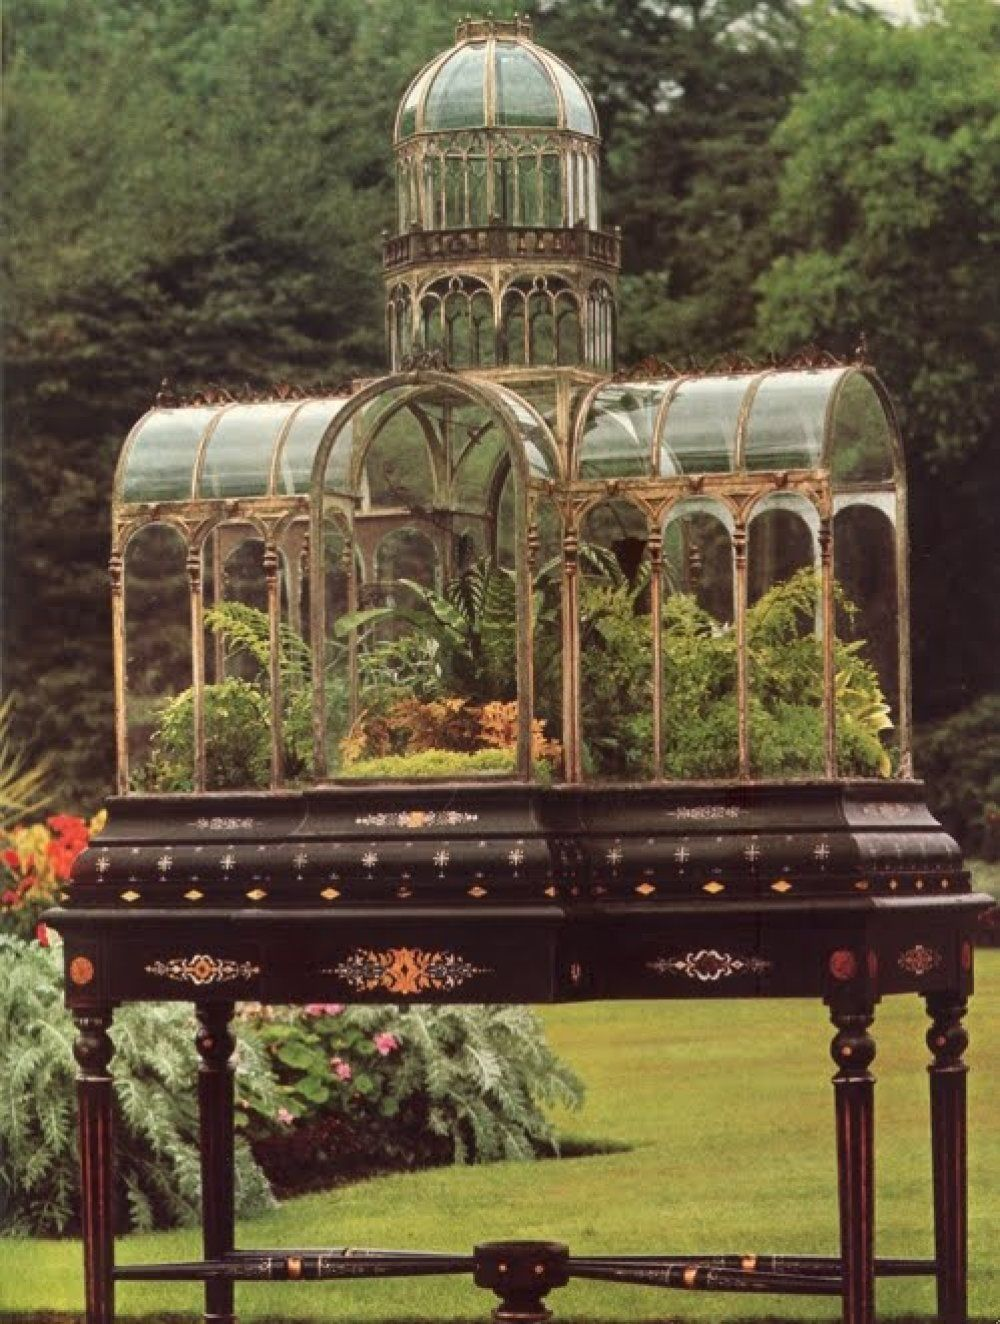 Here S A Large Outdoor Closed Terrarium With A Unique Look On A